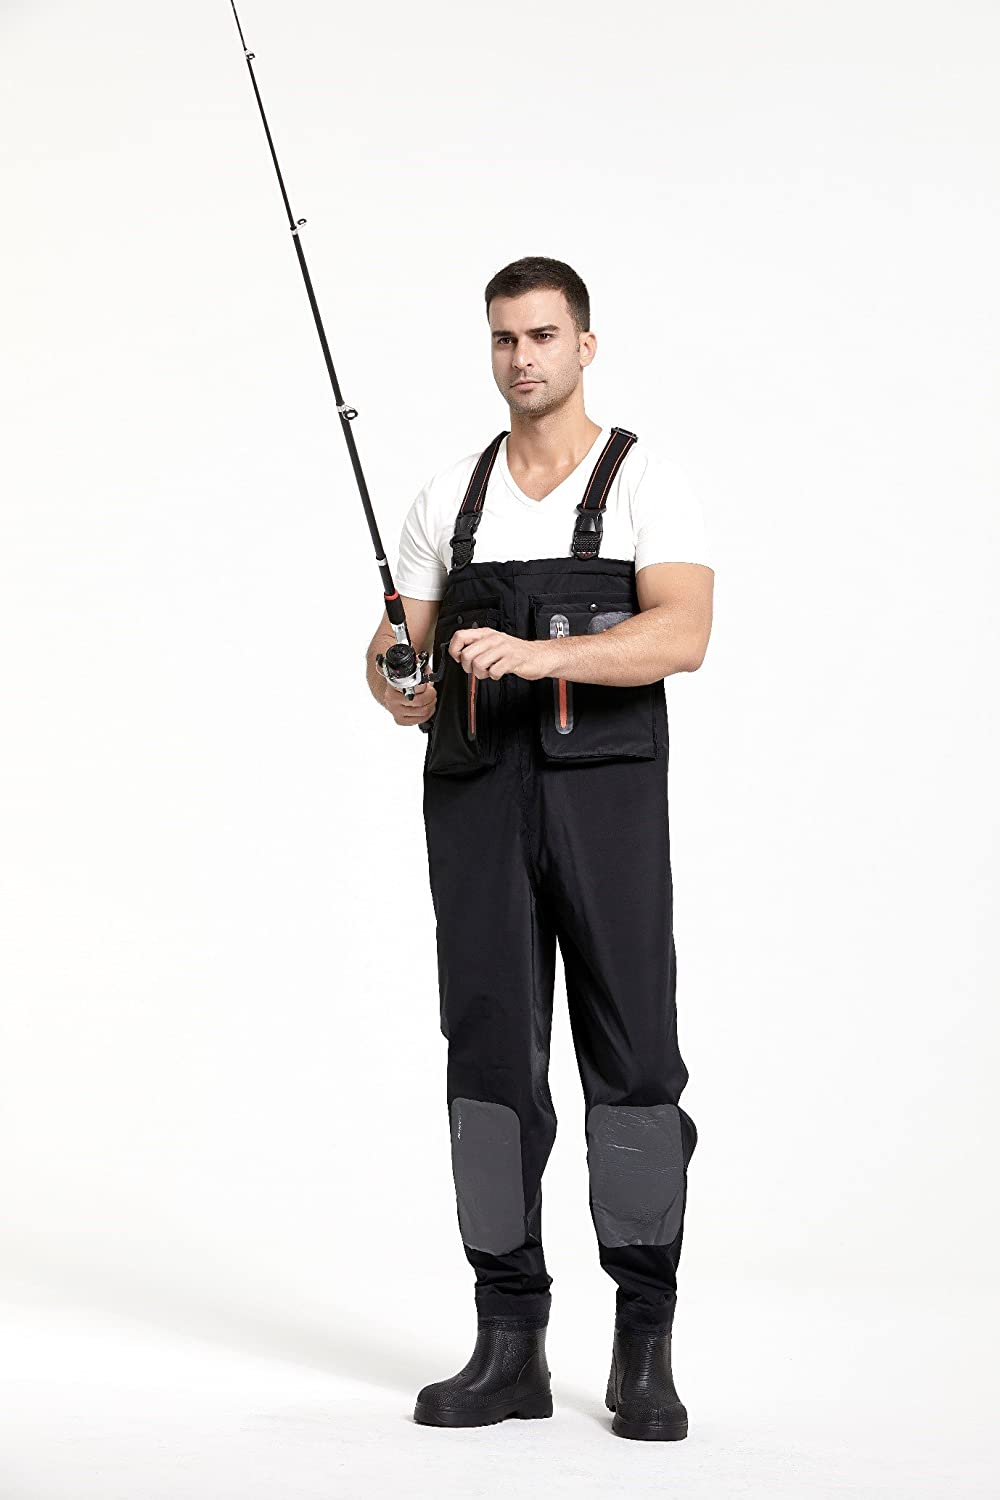 Small Adanin Waders Fly Fishing Waders for Men Black Hunting and Fishing Chest Waders with Rubber Boots